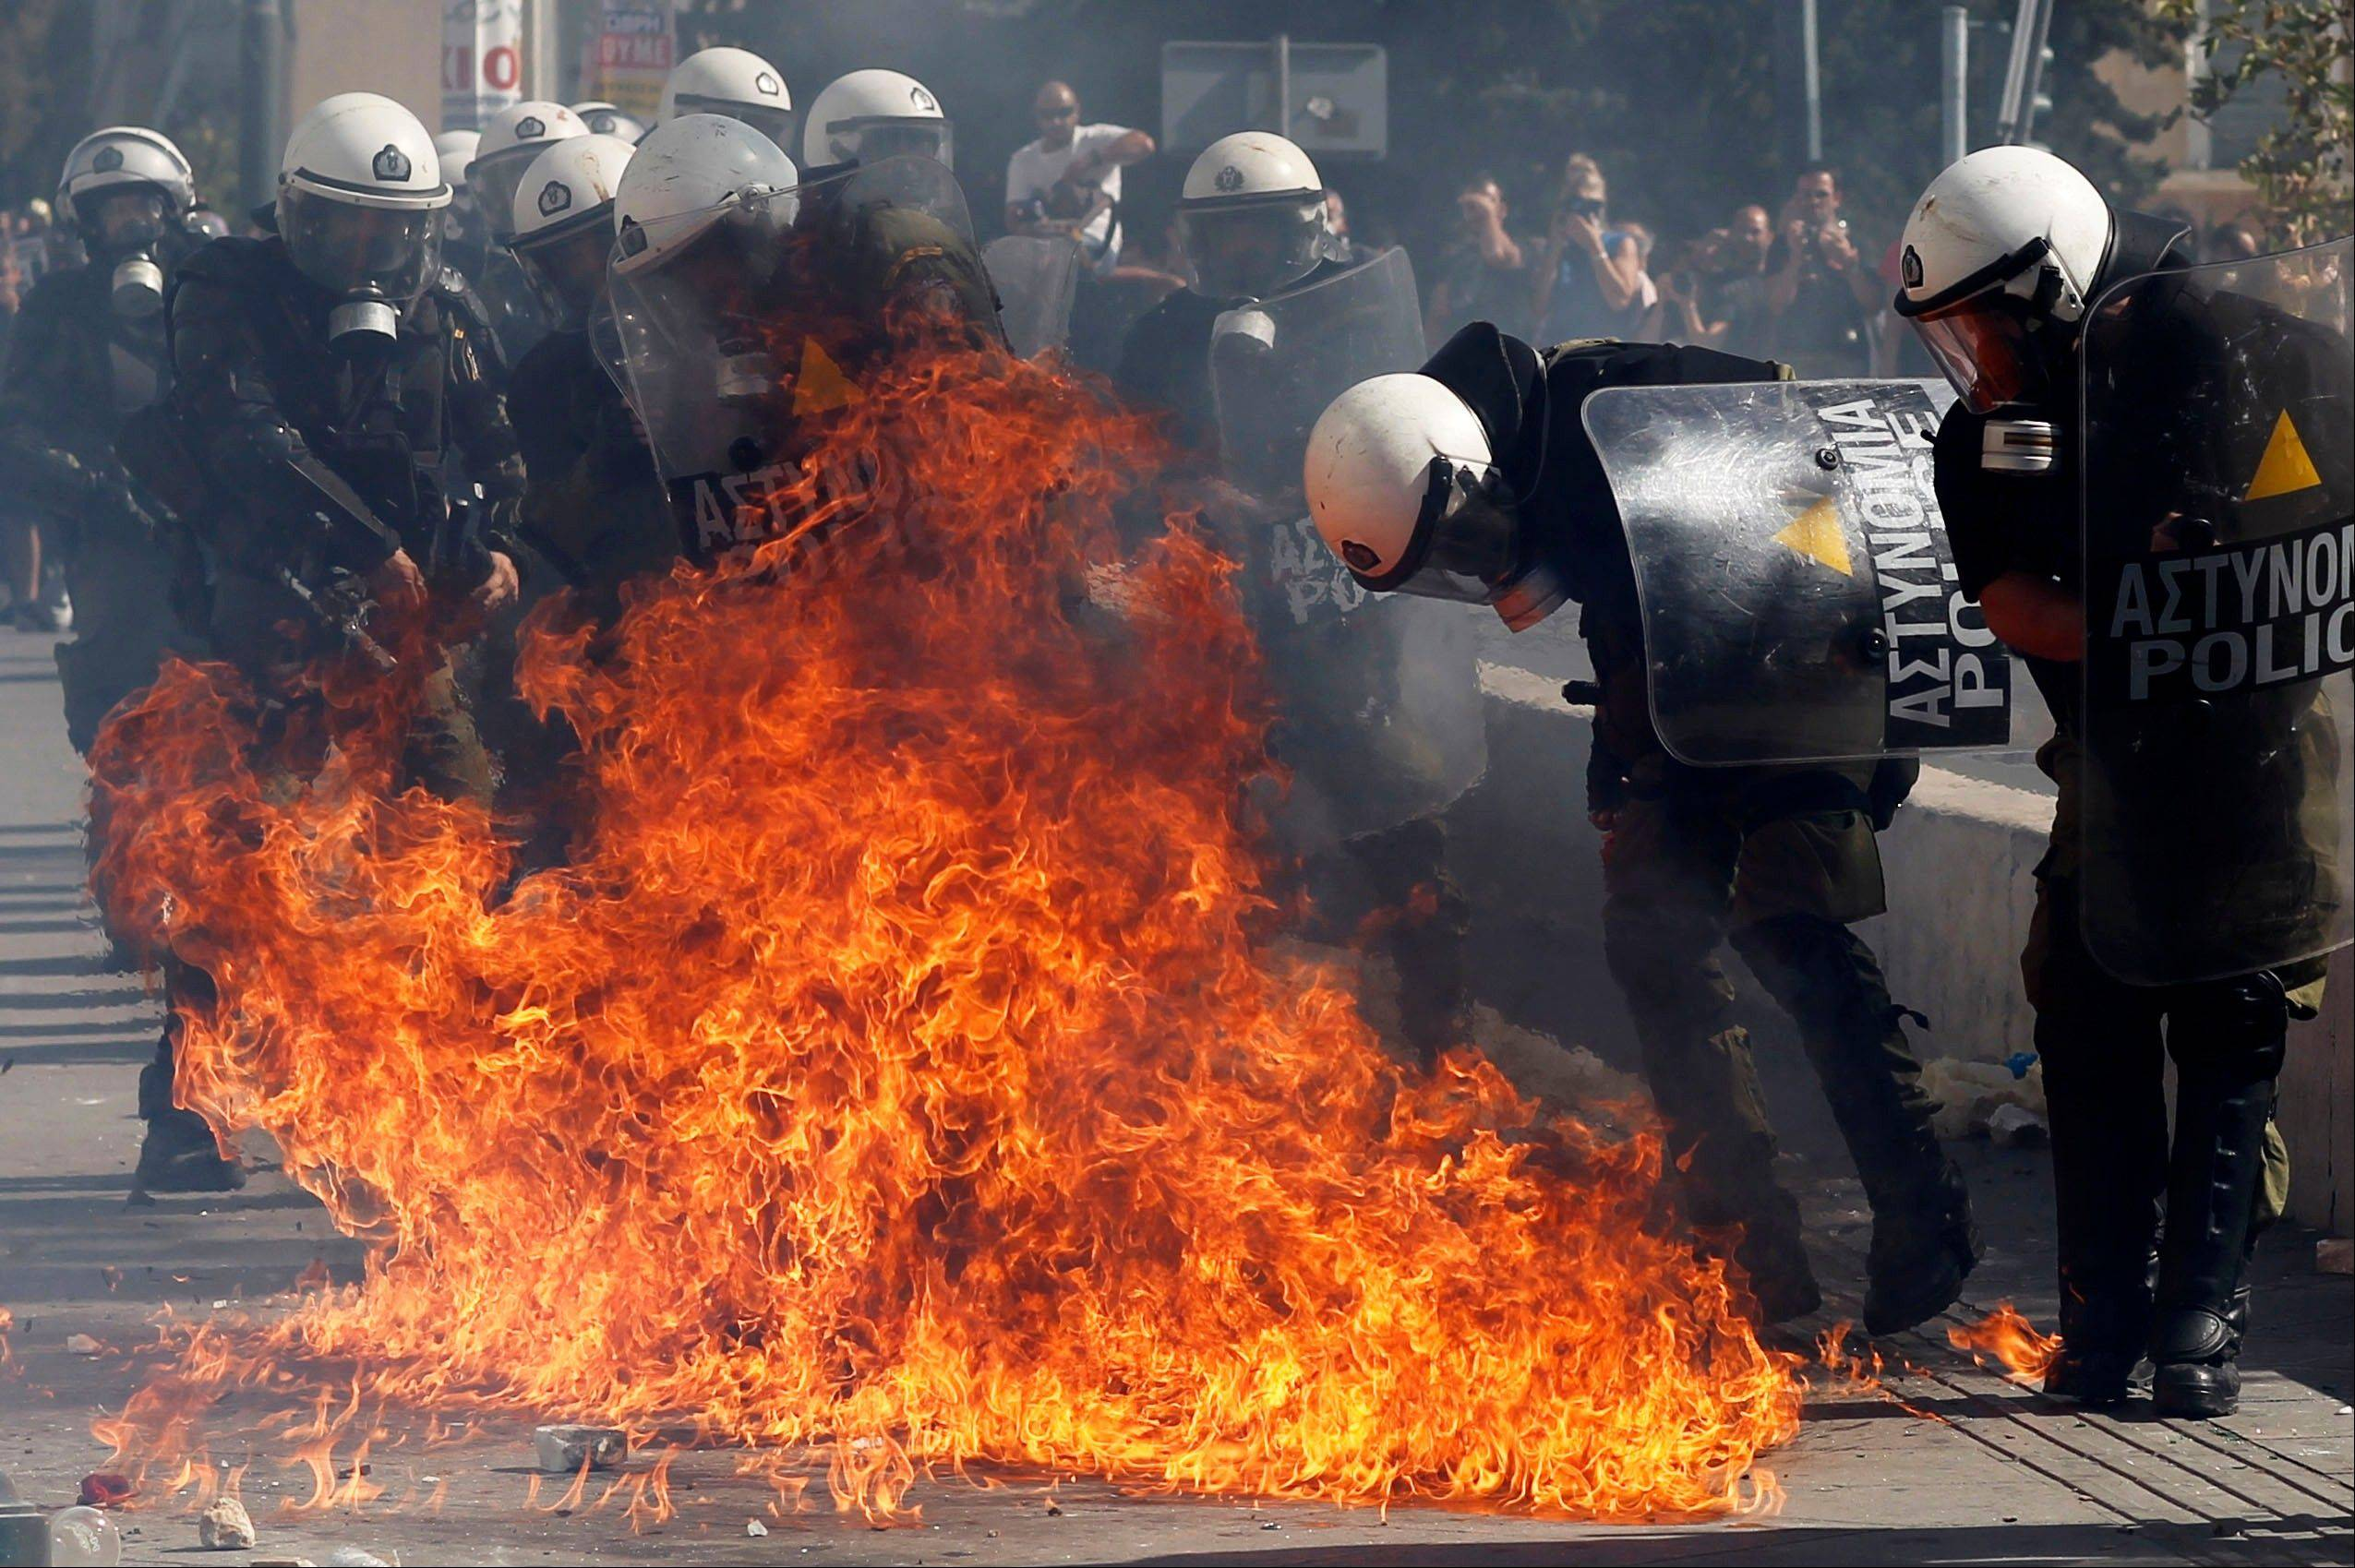 Associated Press Protesters throw petrol bombs at riot police officers during a 24-hour nationwide general strike in Athens on Thursday, Oct. 18, 2012. Hundreds of youths pelted riot police with petrol bombs, bottles and chunks of marble Thursday as yet another Greek anti-austerity demonstration descended into violence.